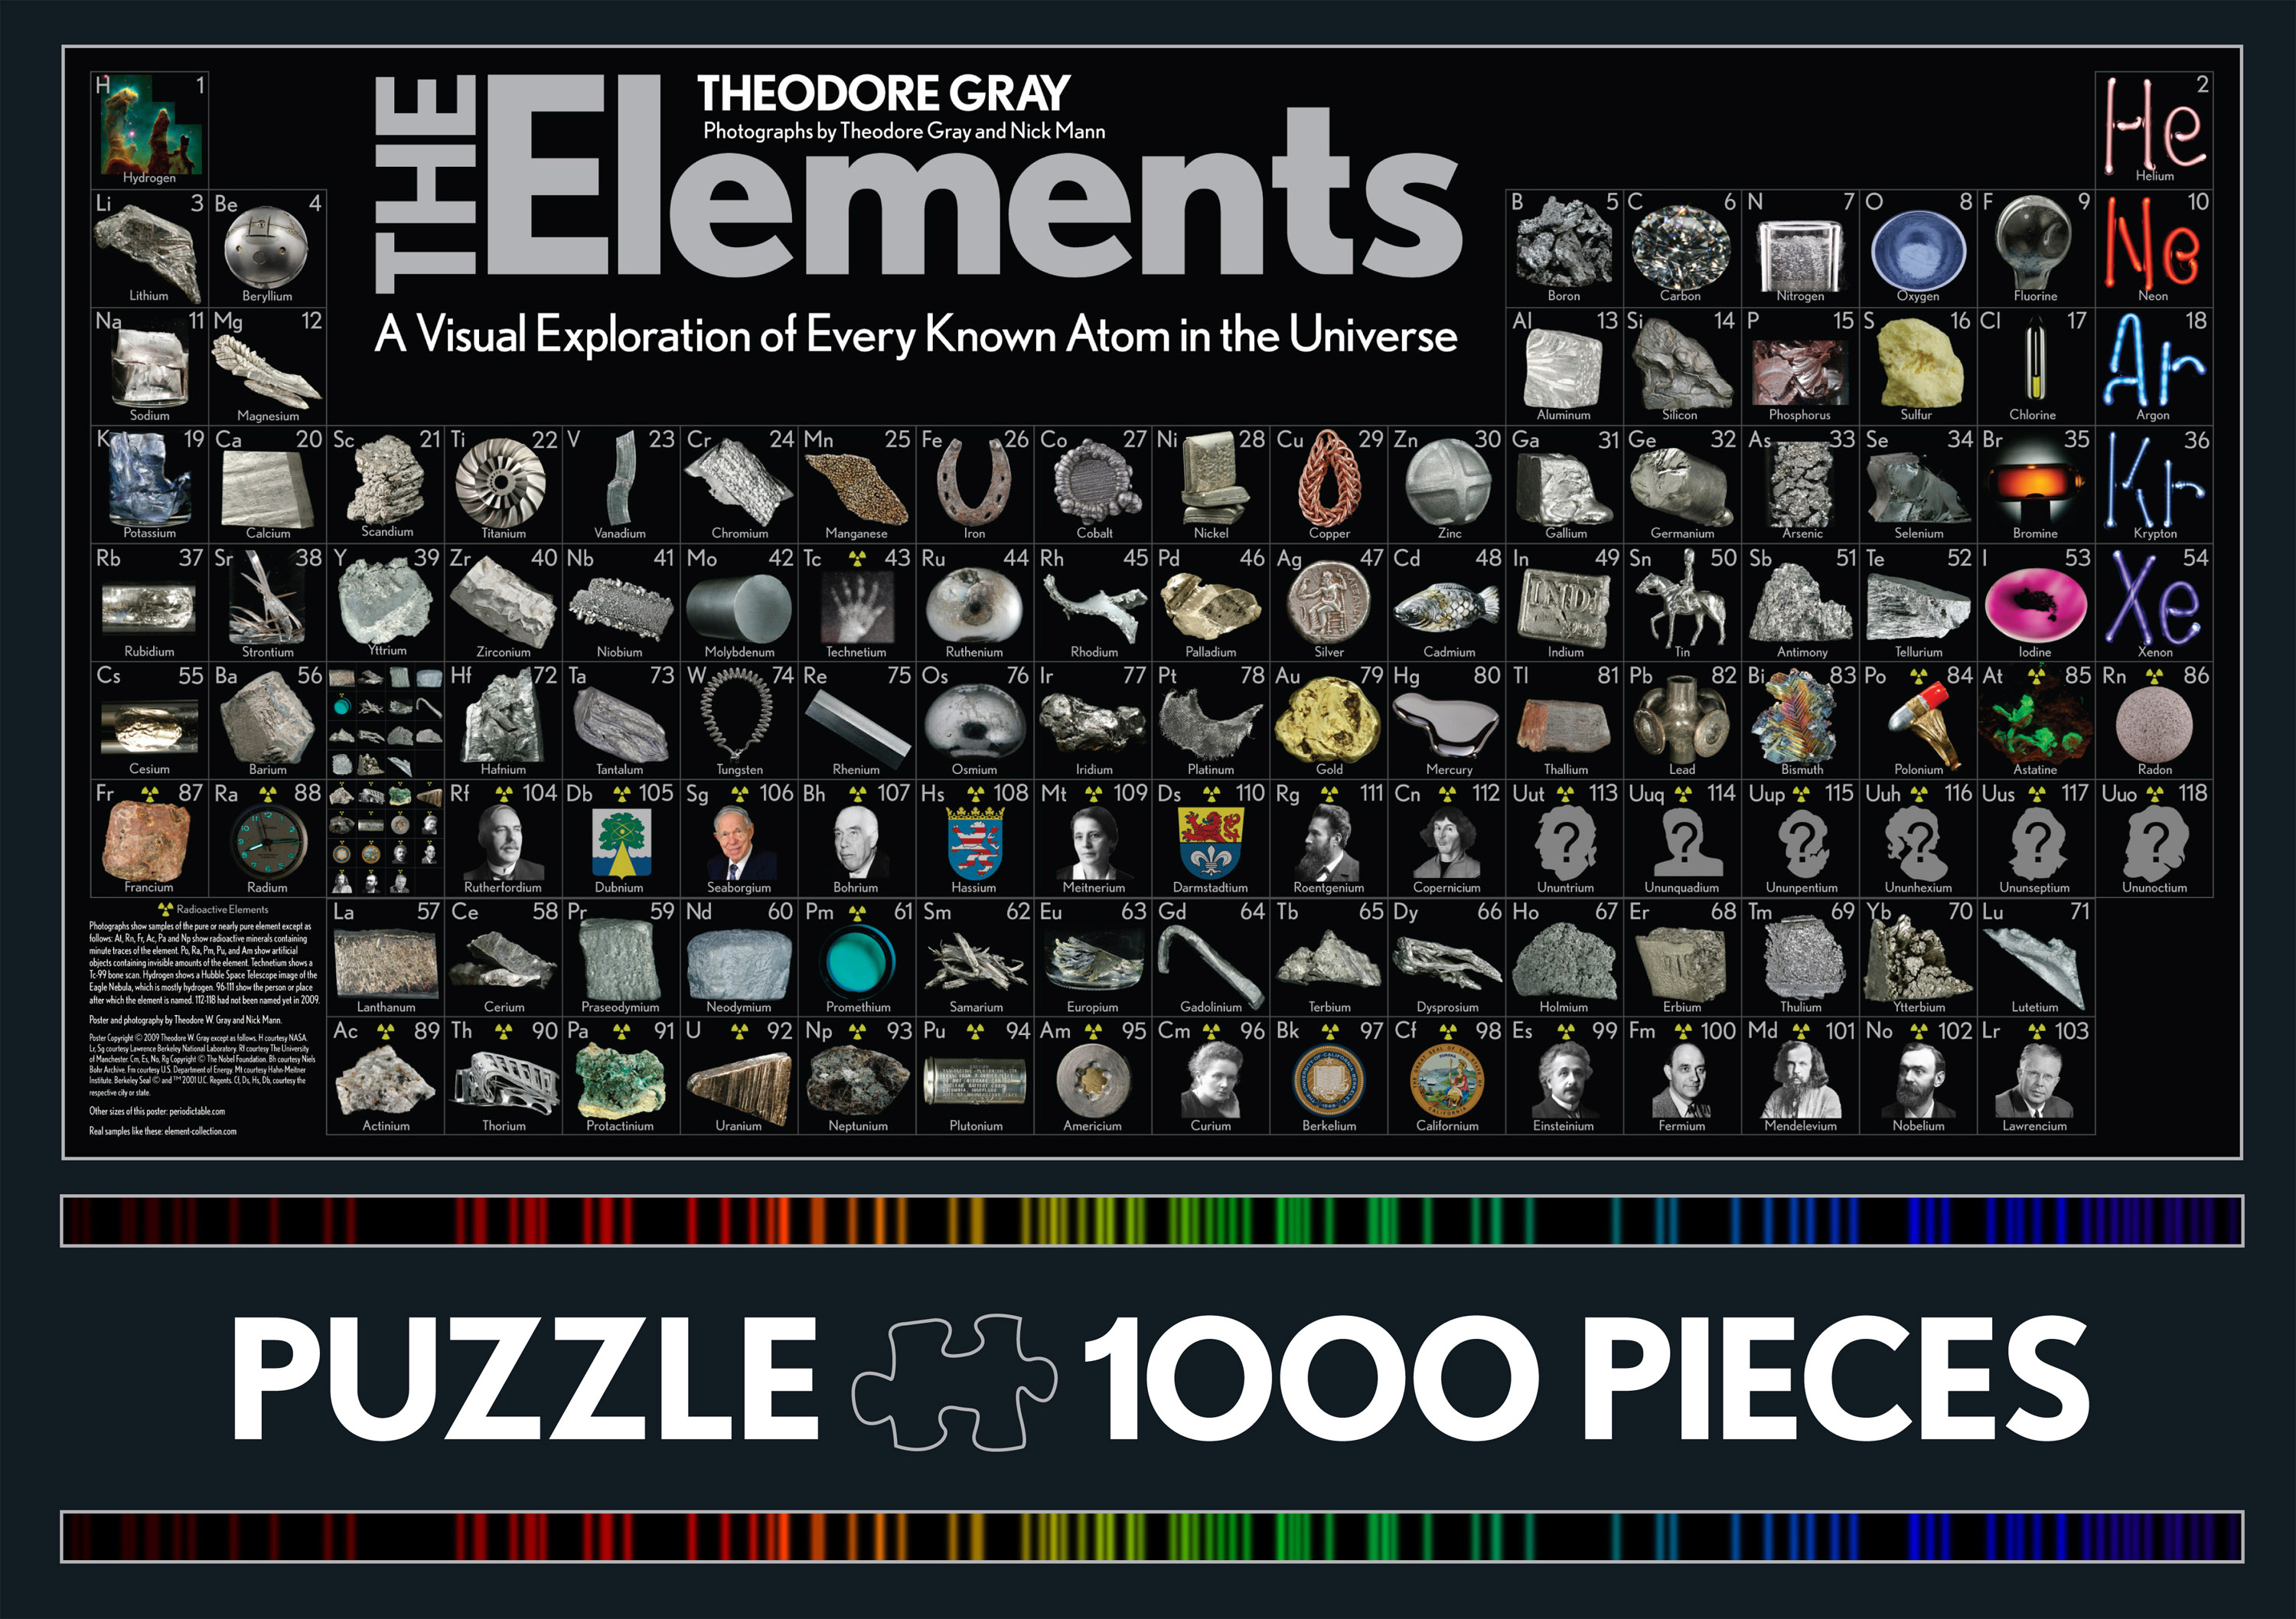 The Elements Puzzle: 1000 Pieces by Theodore Gray, ISBN: 9781579128883